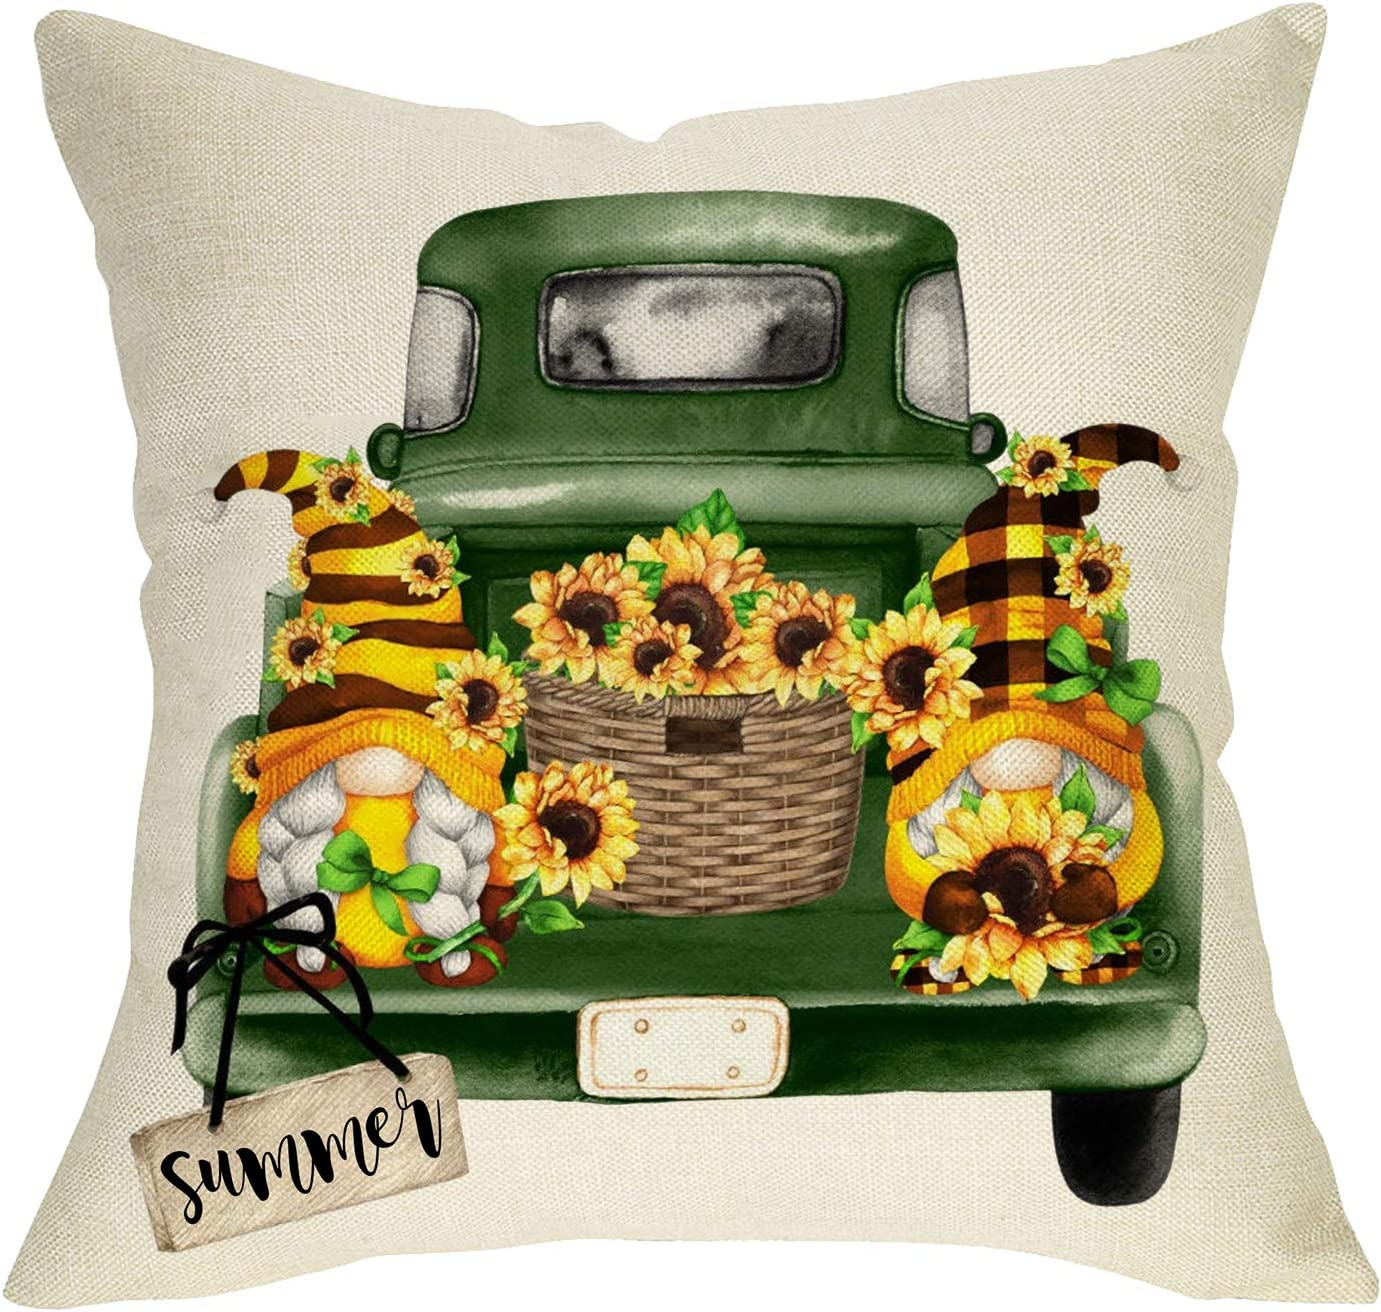 Fbcoo Summer Sunflower Gnome Decorative Throw Pillow Cover, Buffalo Plaid Check Green Truck Flower Basket Cushion Case Decor, Farmhouse Home Square Pillowcase Decorations for Sofa Couch 18 x 18